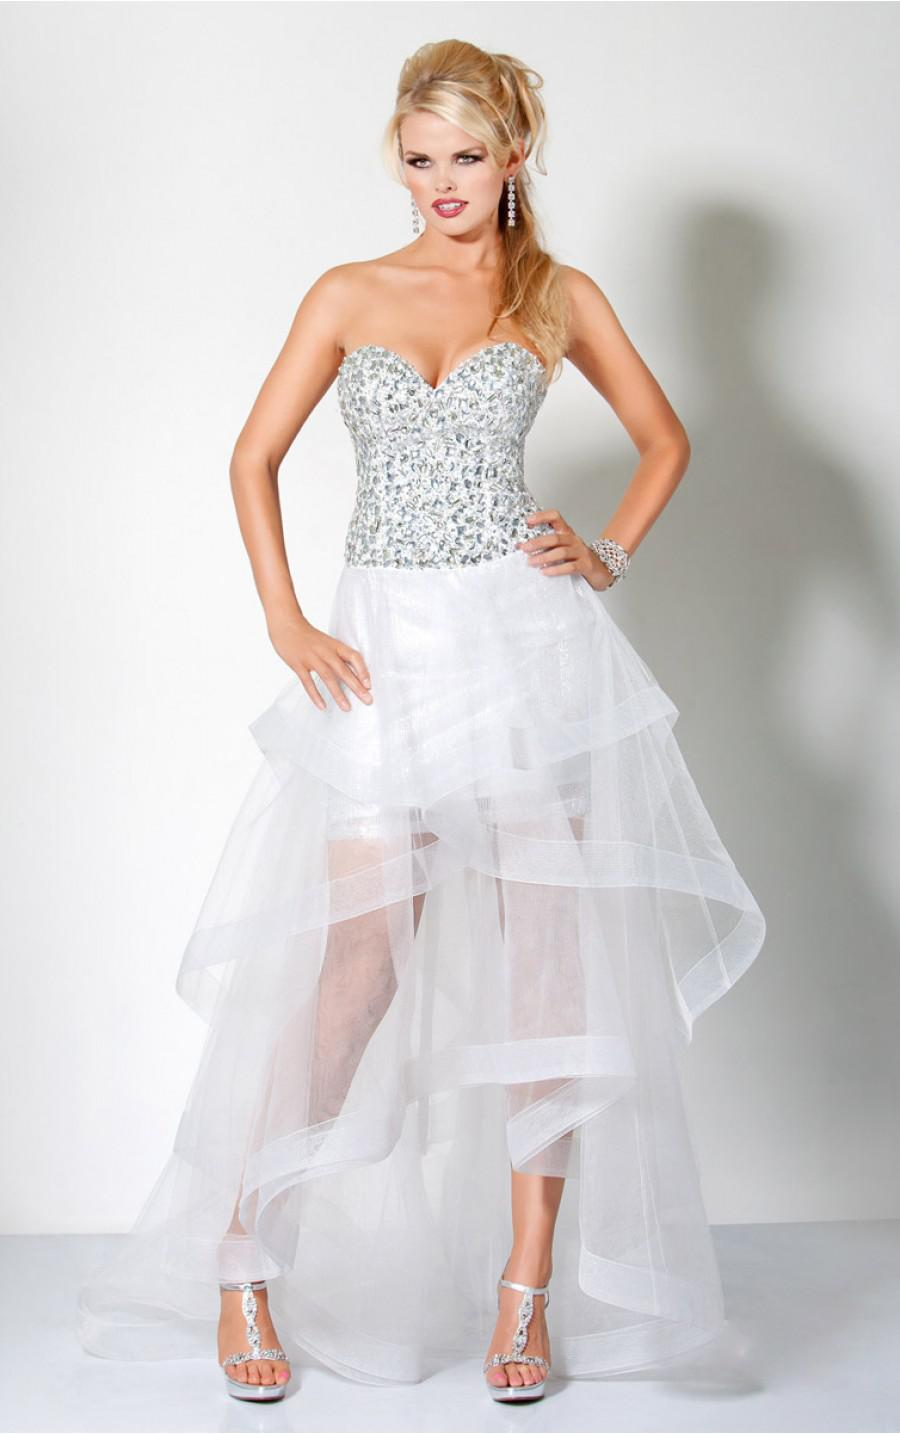 Sweetheart Short White Prom Dresses Rhinestone Lace-up Organza ...